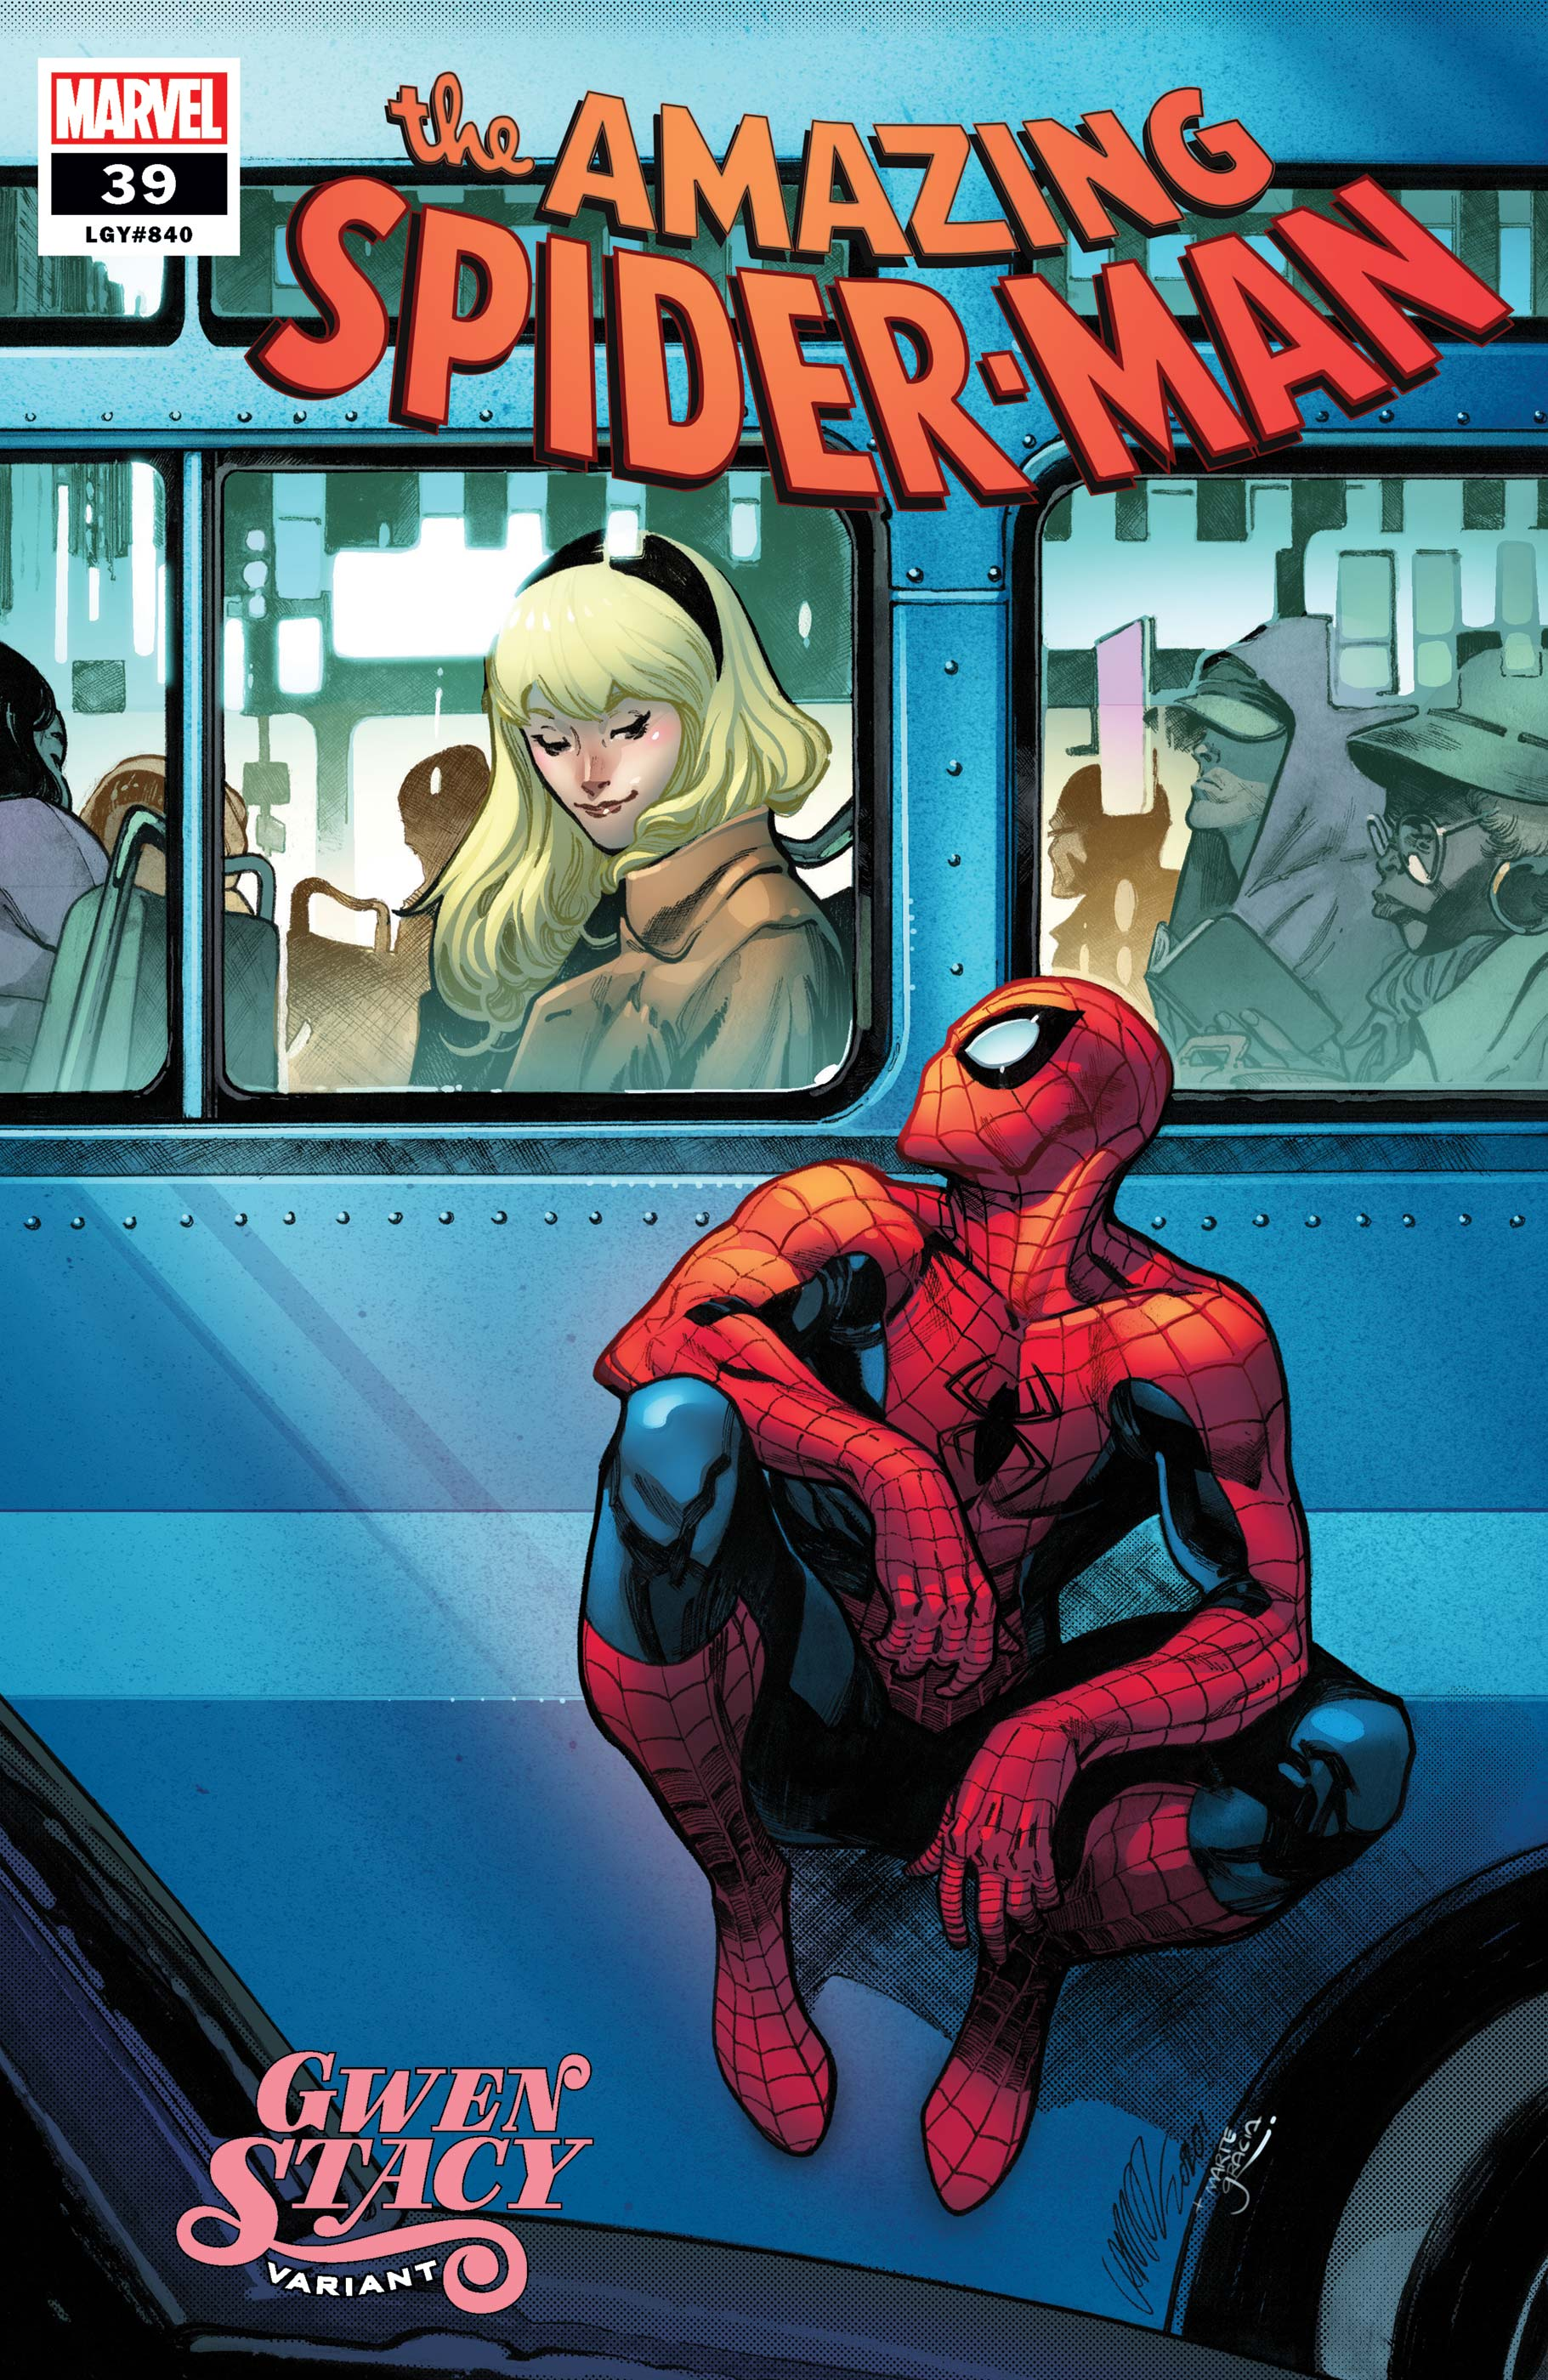 The Amazing Spider-Man (2018) #39 (Variant)